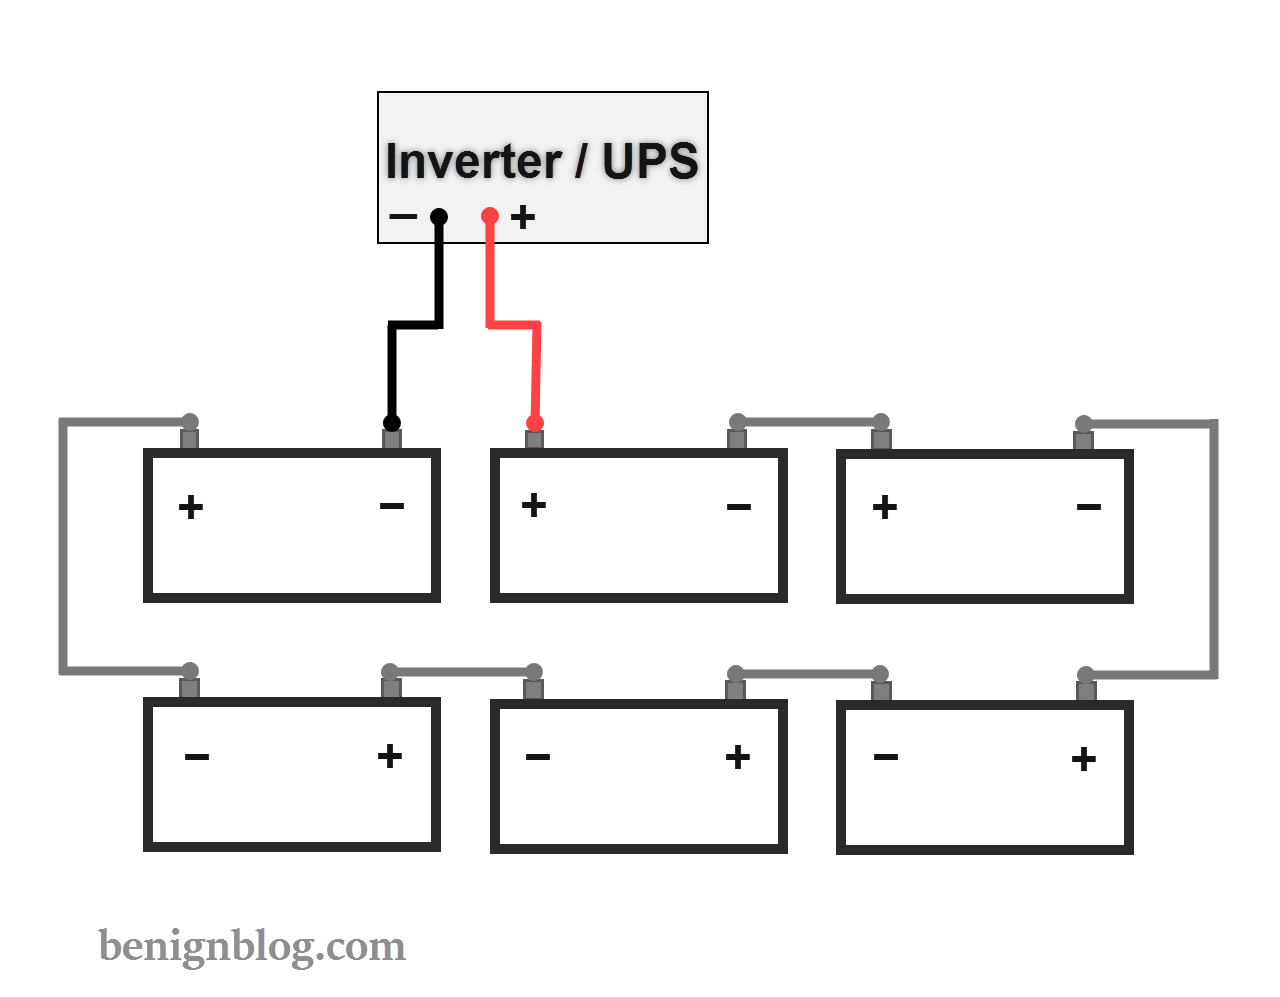 how to connect batteries in series with power inverter or ups 12v inverter battery wiring diagram [ 1280 x 997 Pixel ]